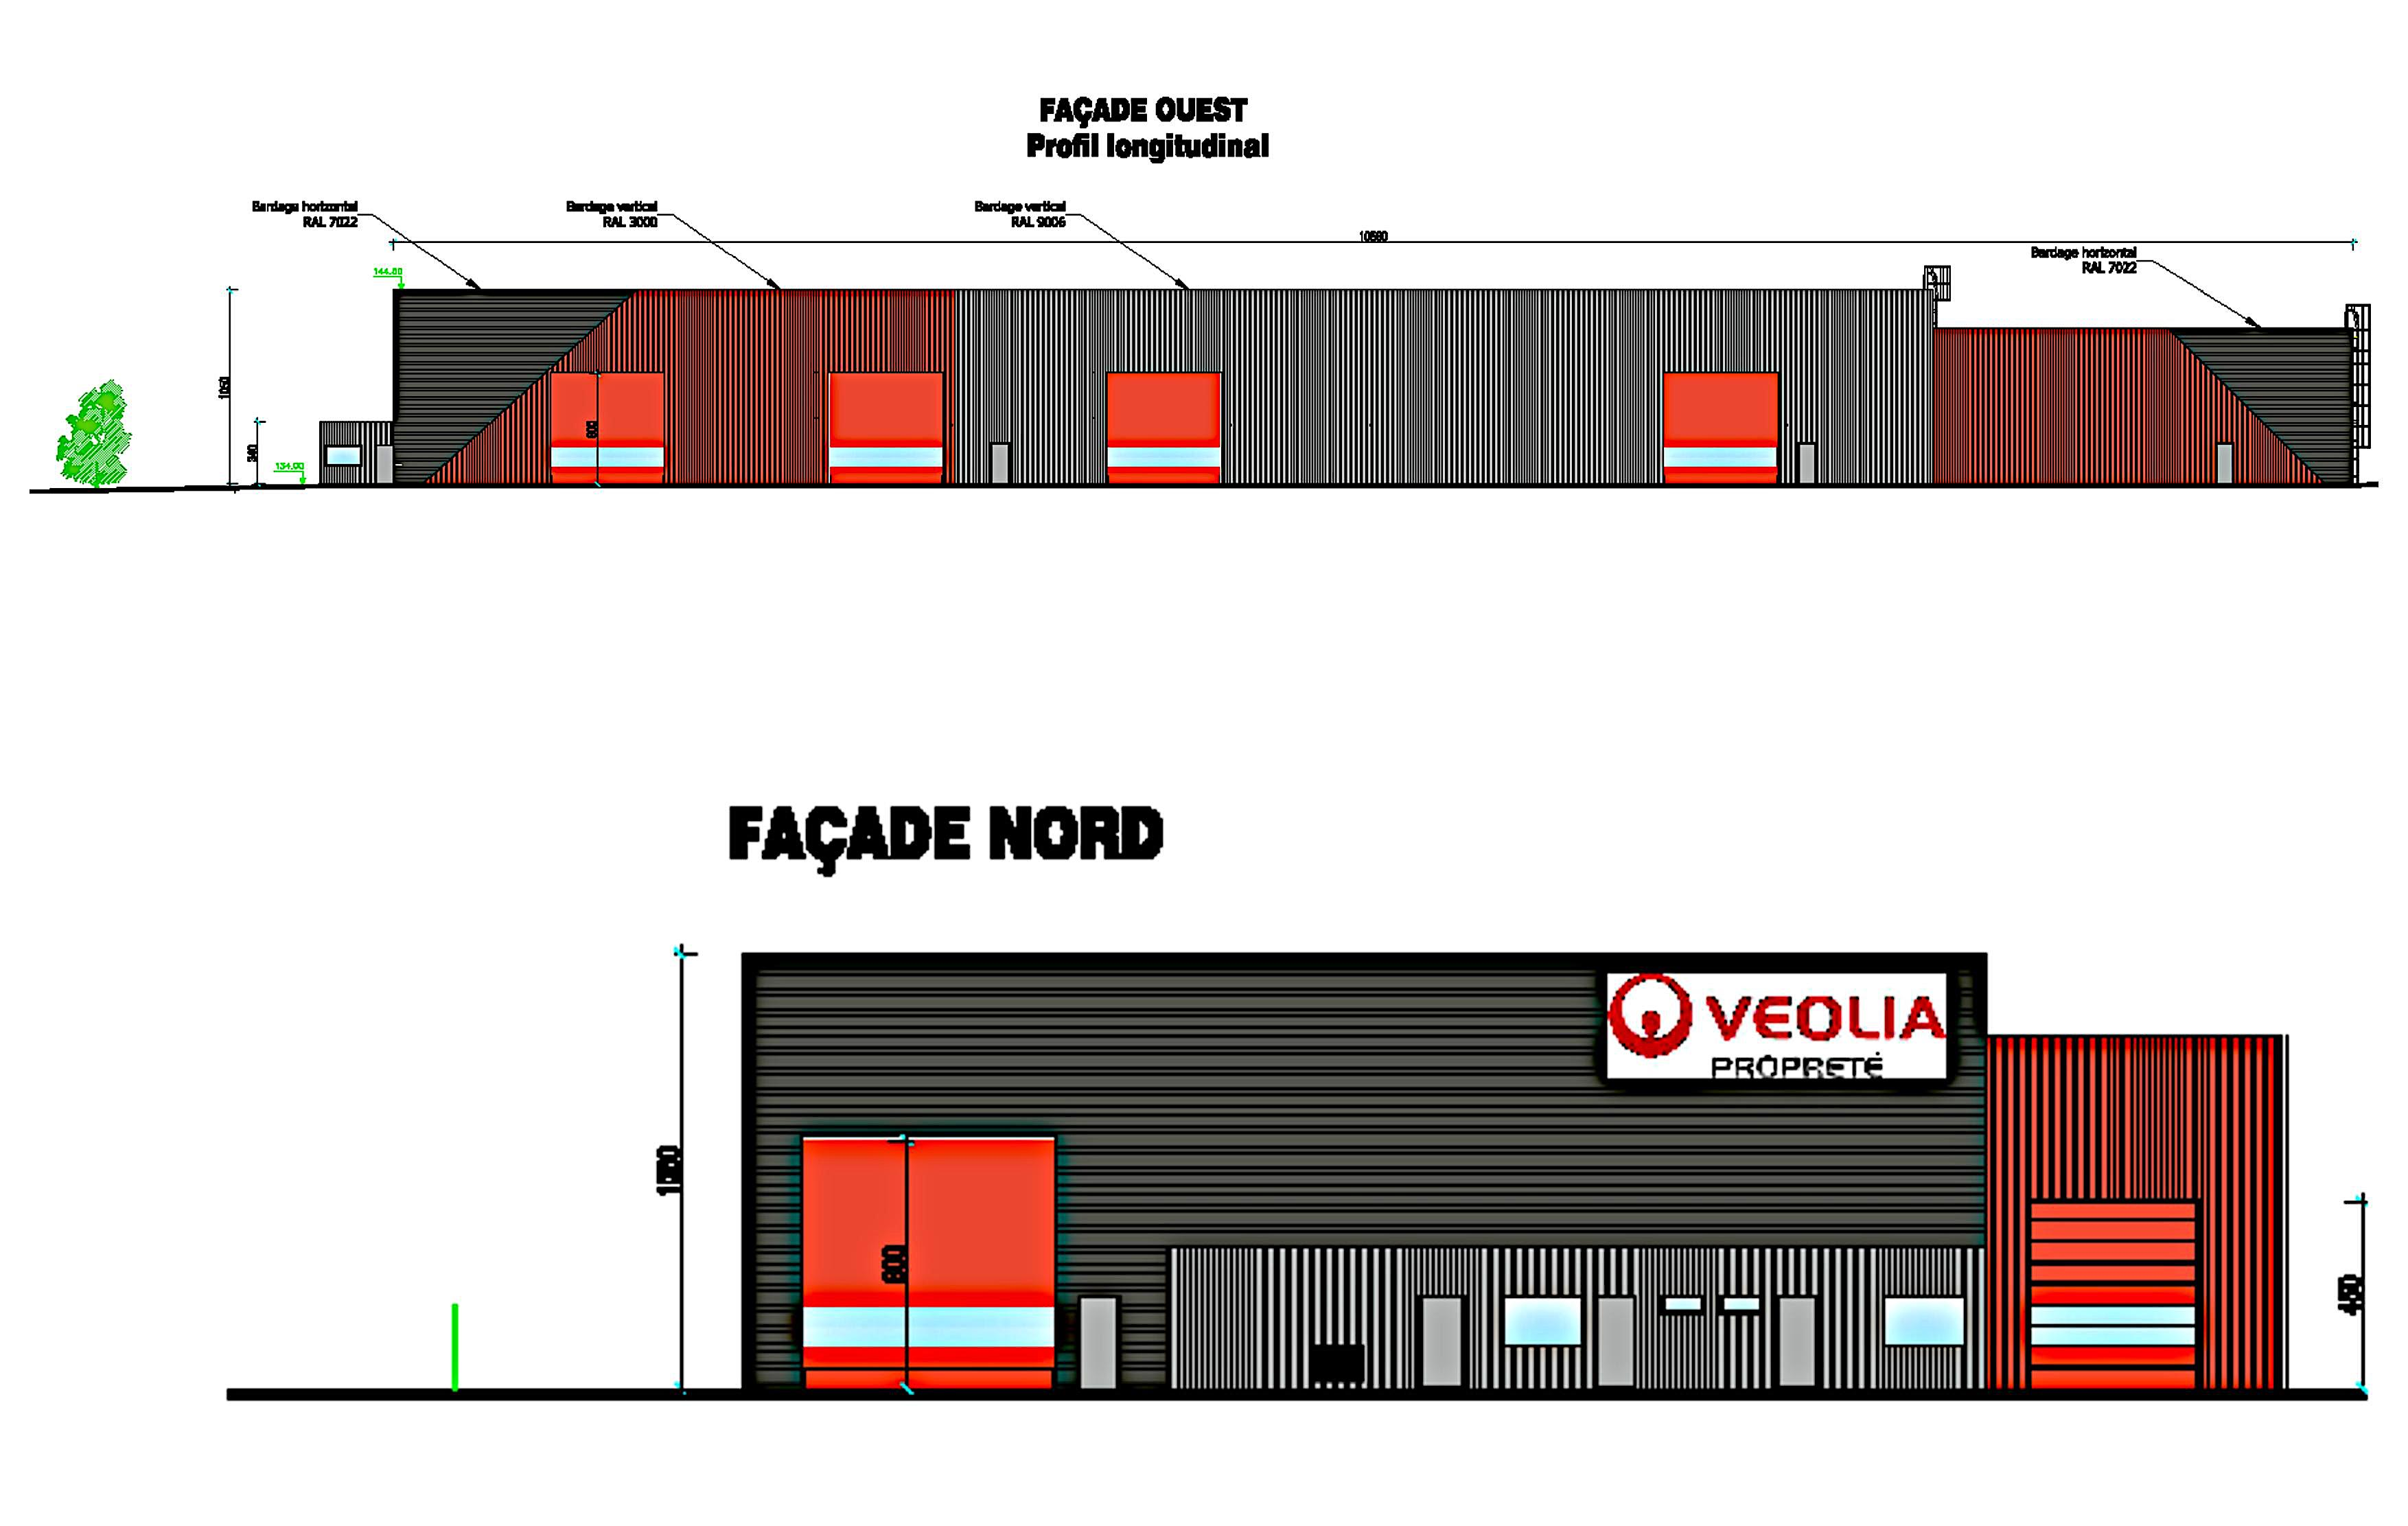 Click to enlarge image VEOLIA-page-001.jpg